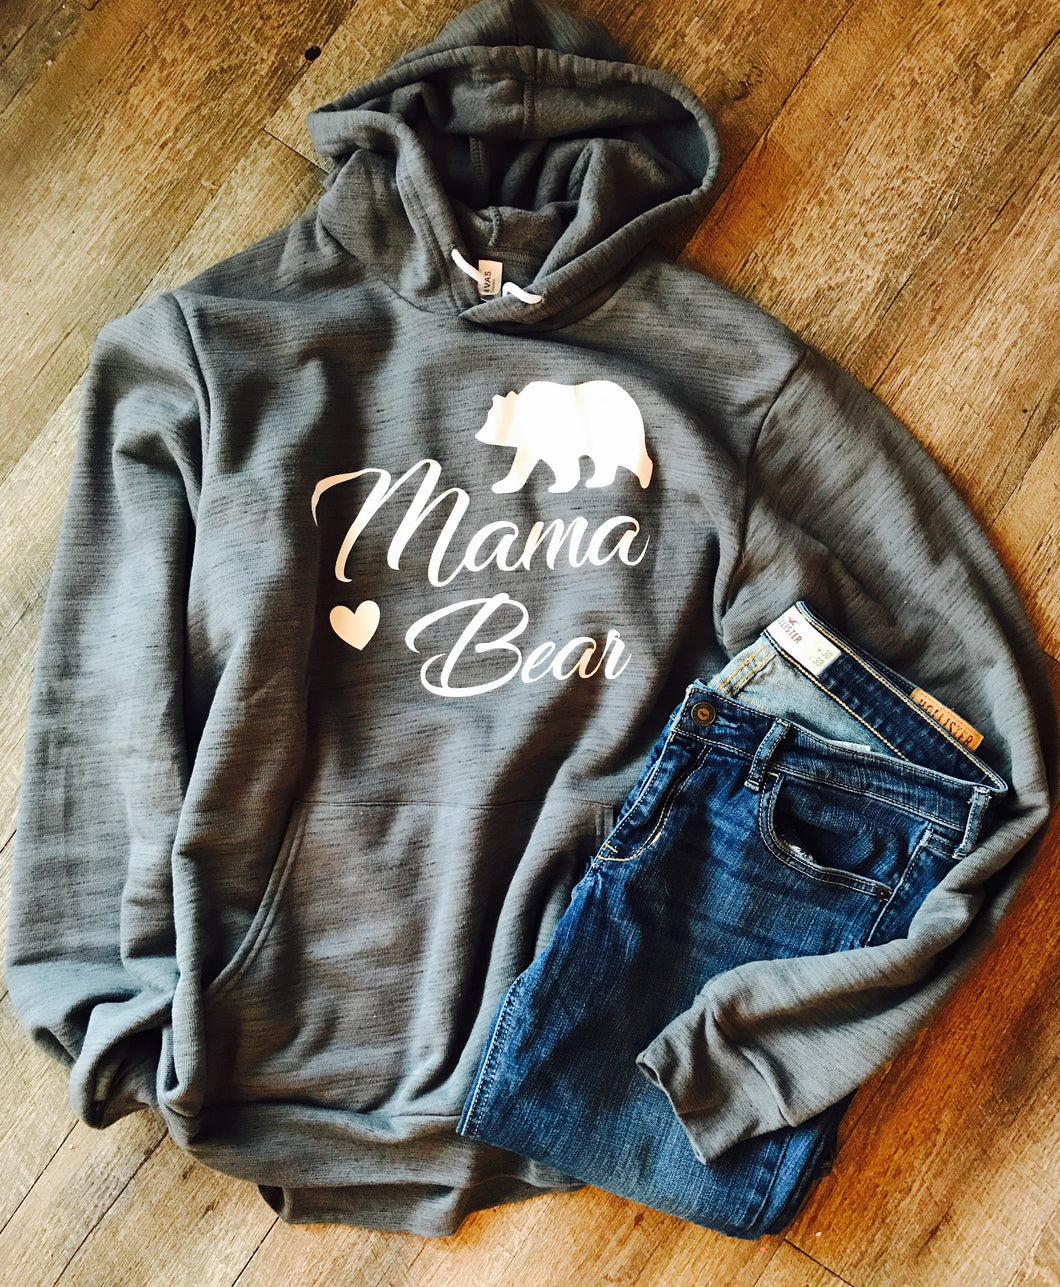 Mama bear supersoft unisex hoodie or t-shirt - Mavictoria Designs Hot Press Express